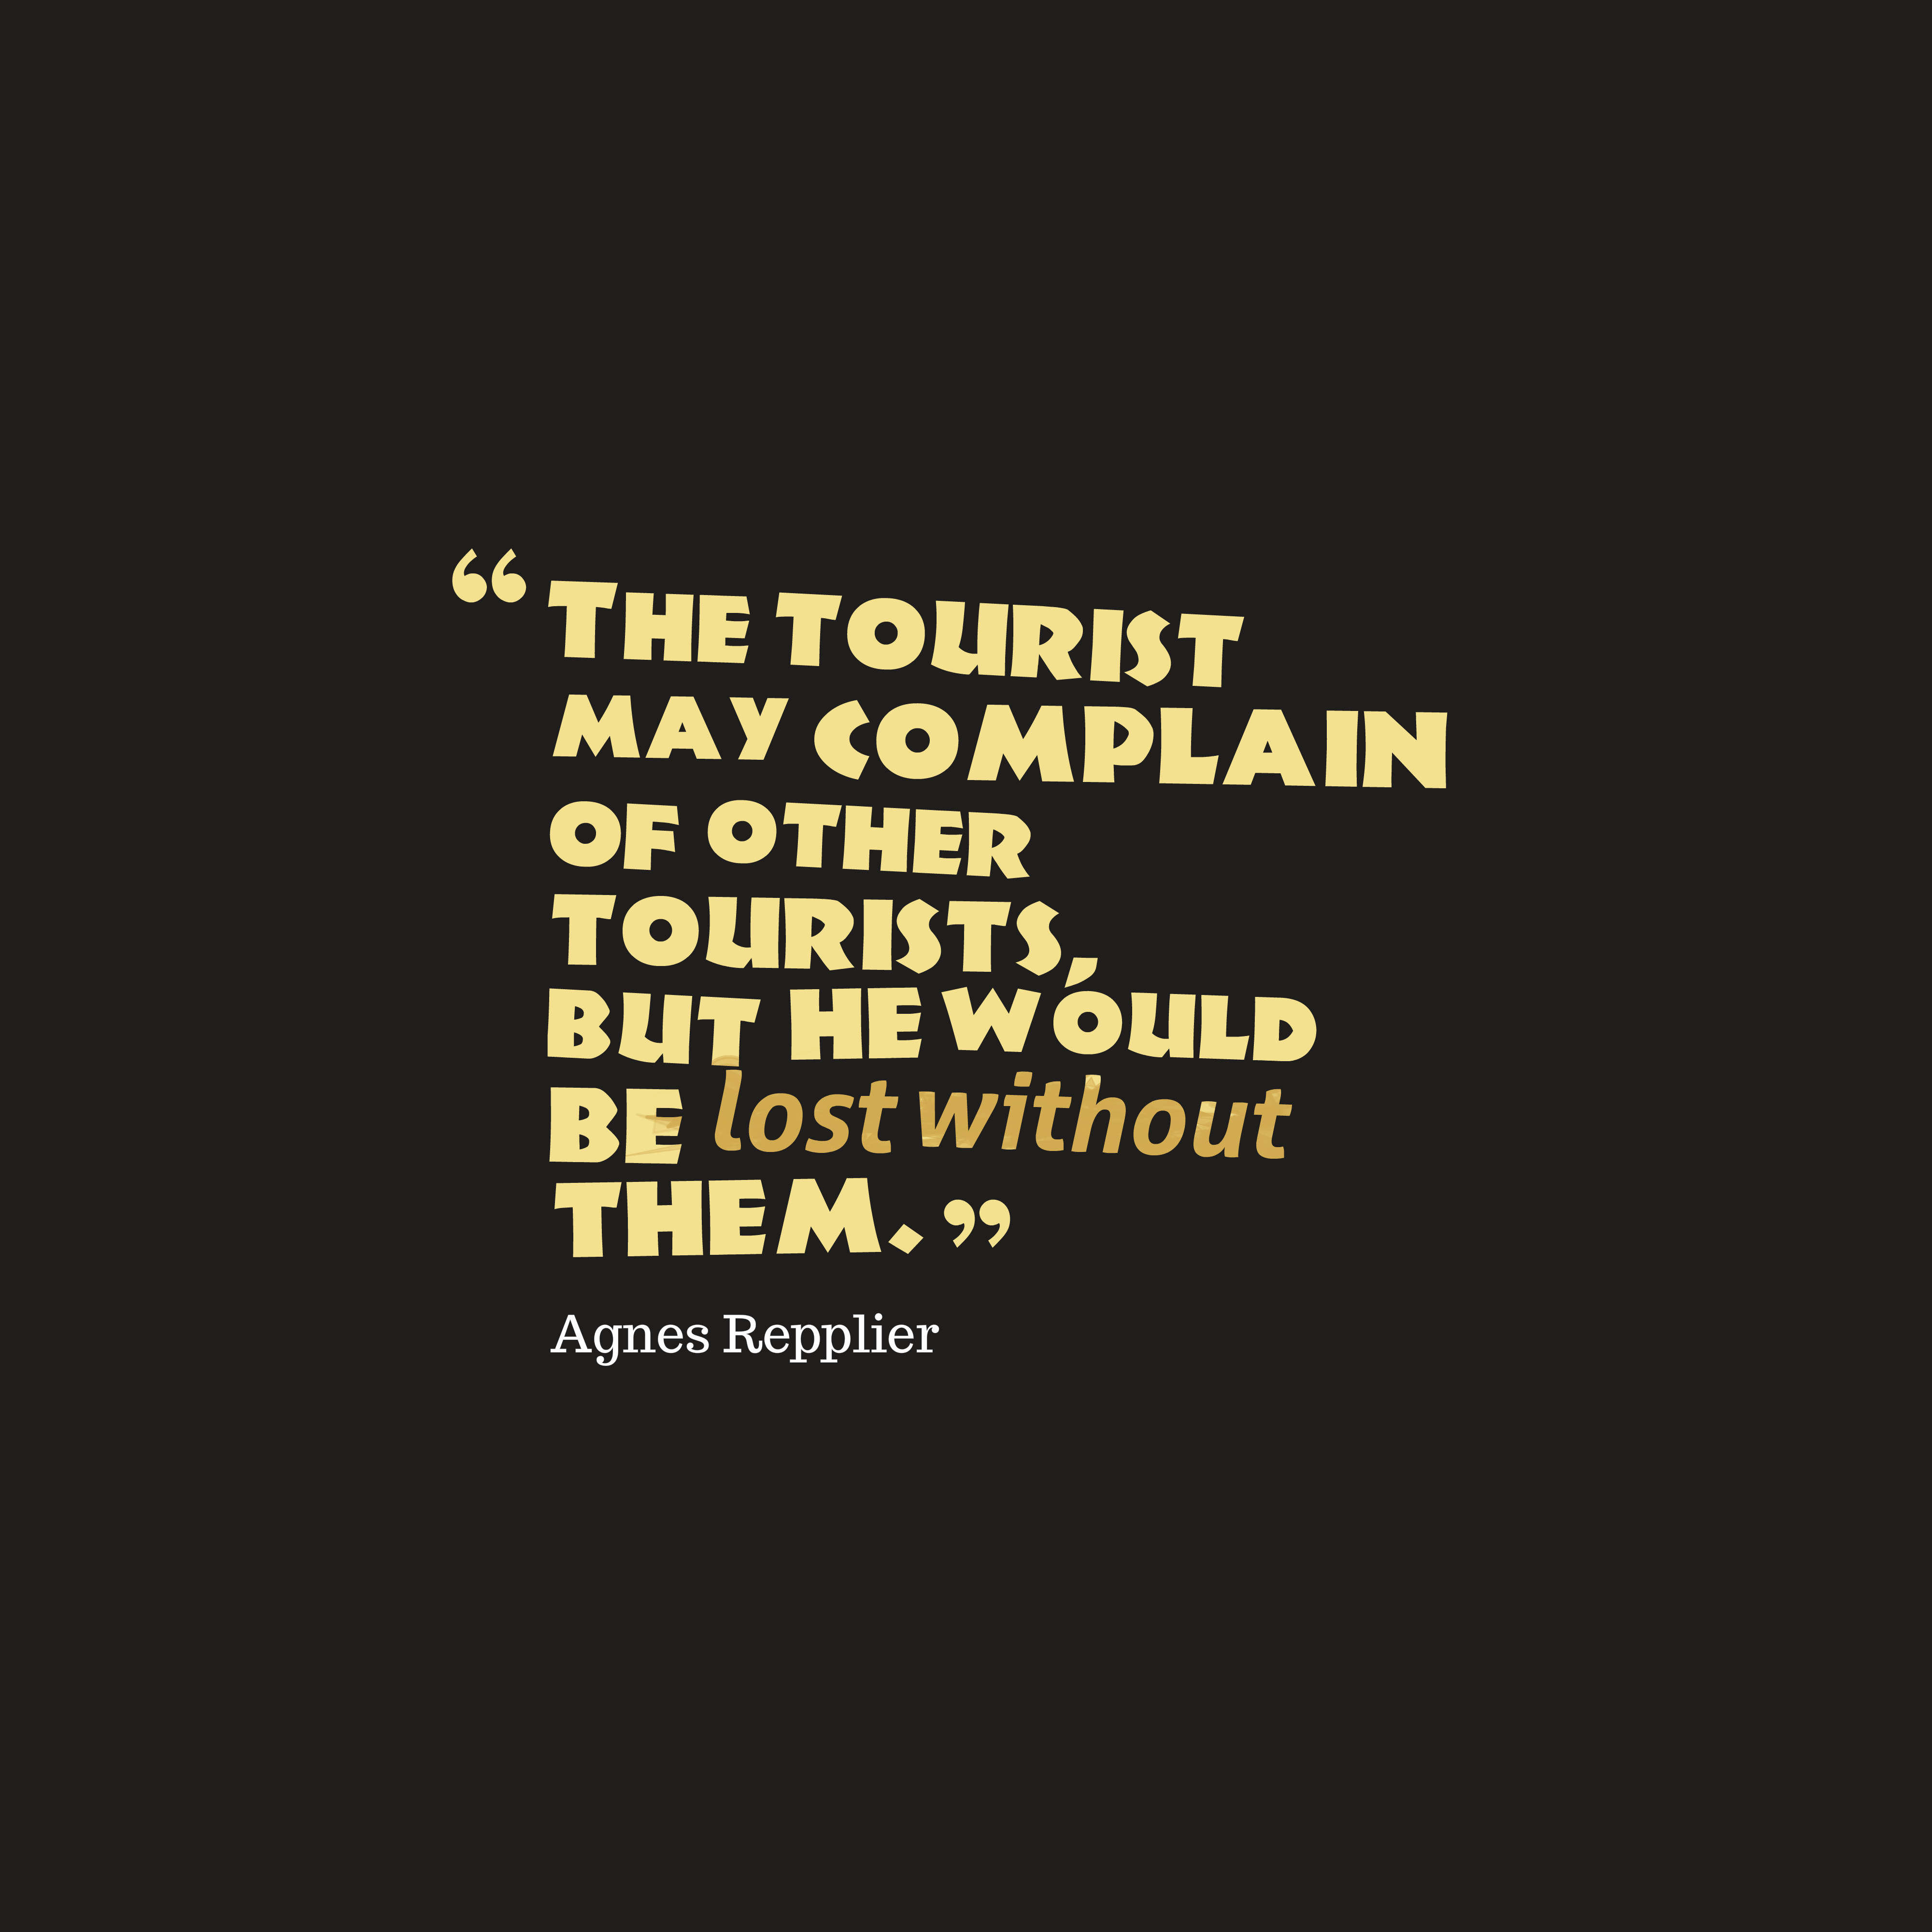 Quotes image of The tourist may complain of other tourists, but he would be lost without them.